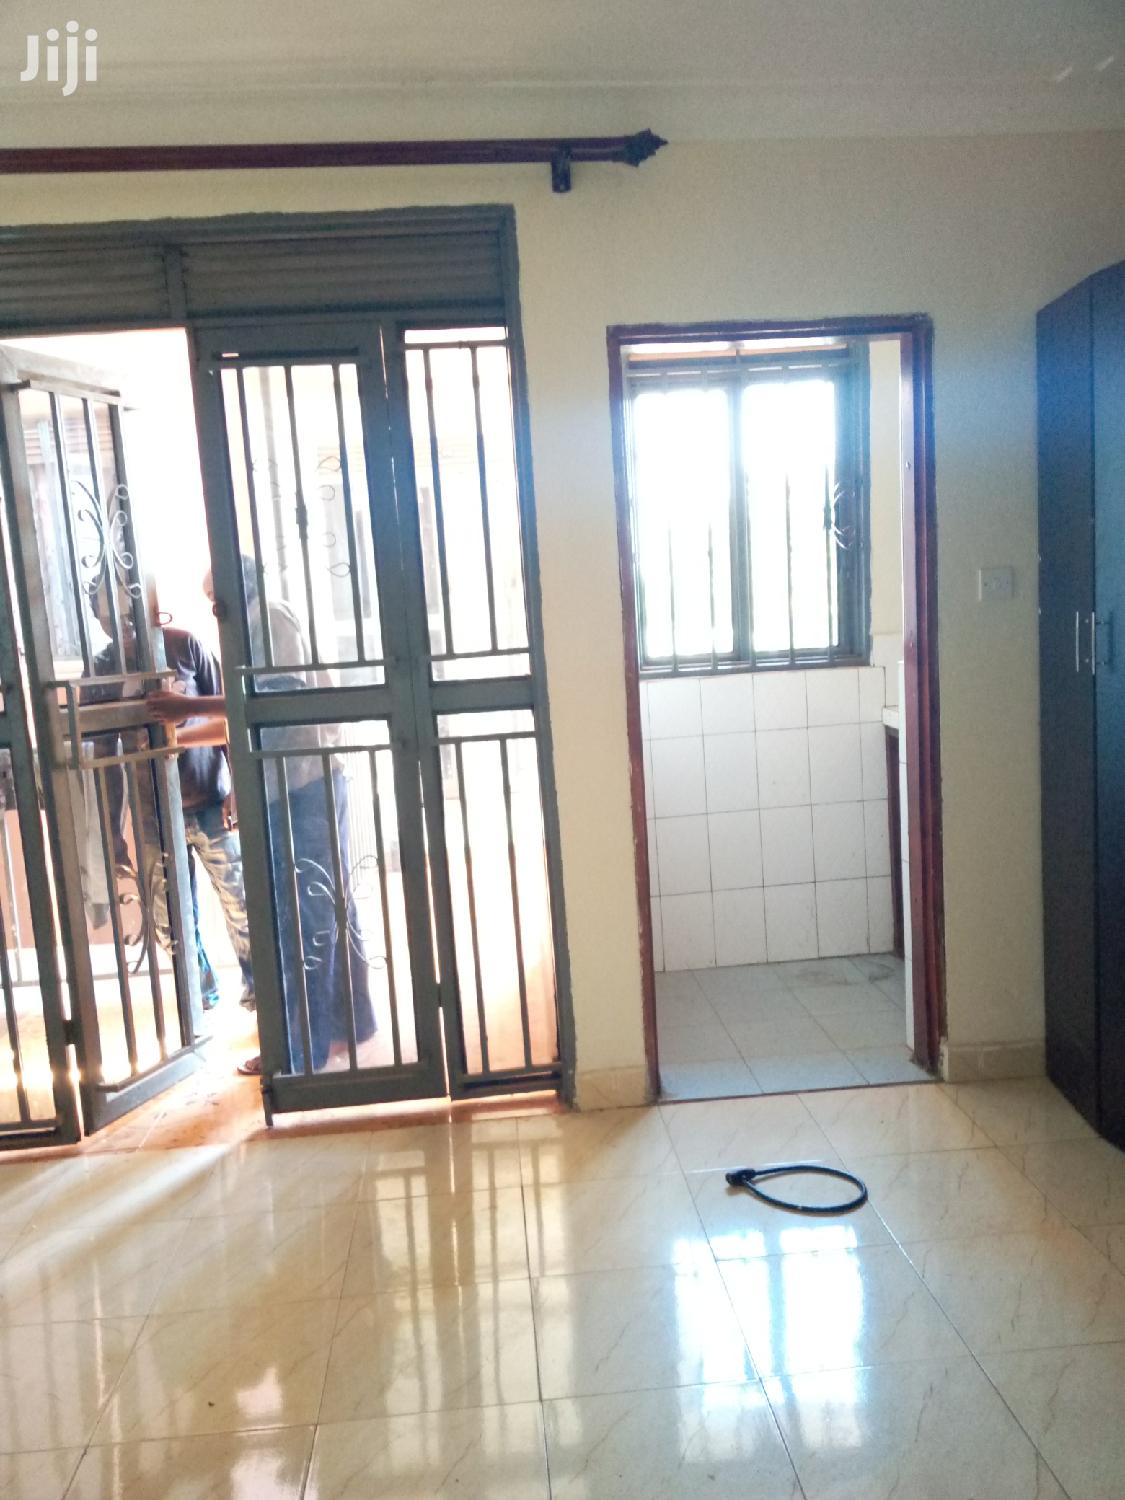 Single Room House For Rent In Kitintale Mutungo Road | Houses & Apartments For Rent for sale in Kampala, Central Region, Uganda